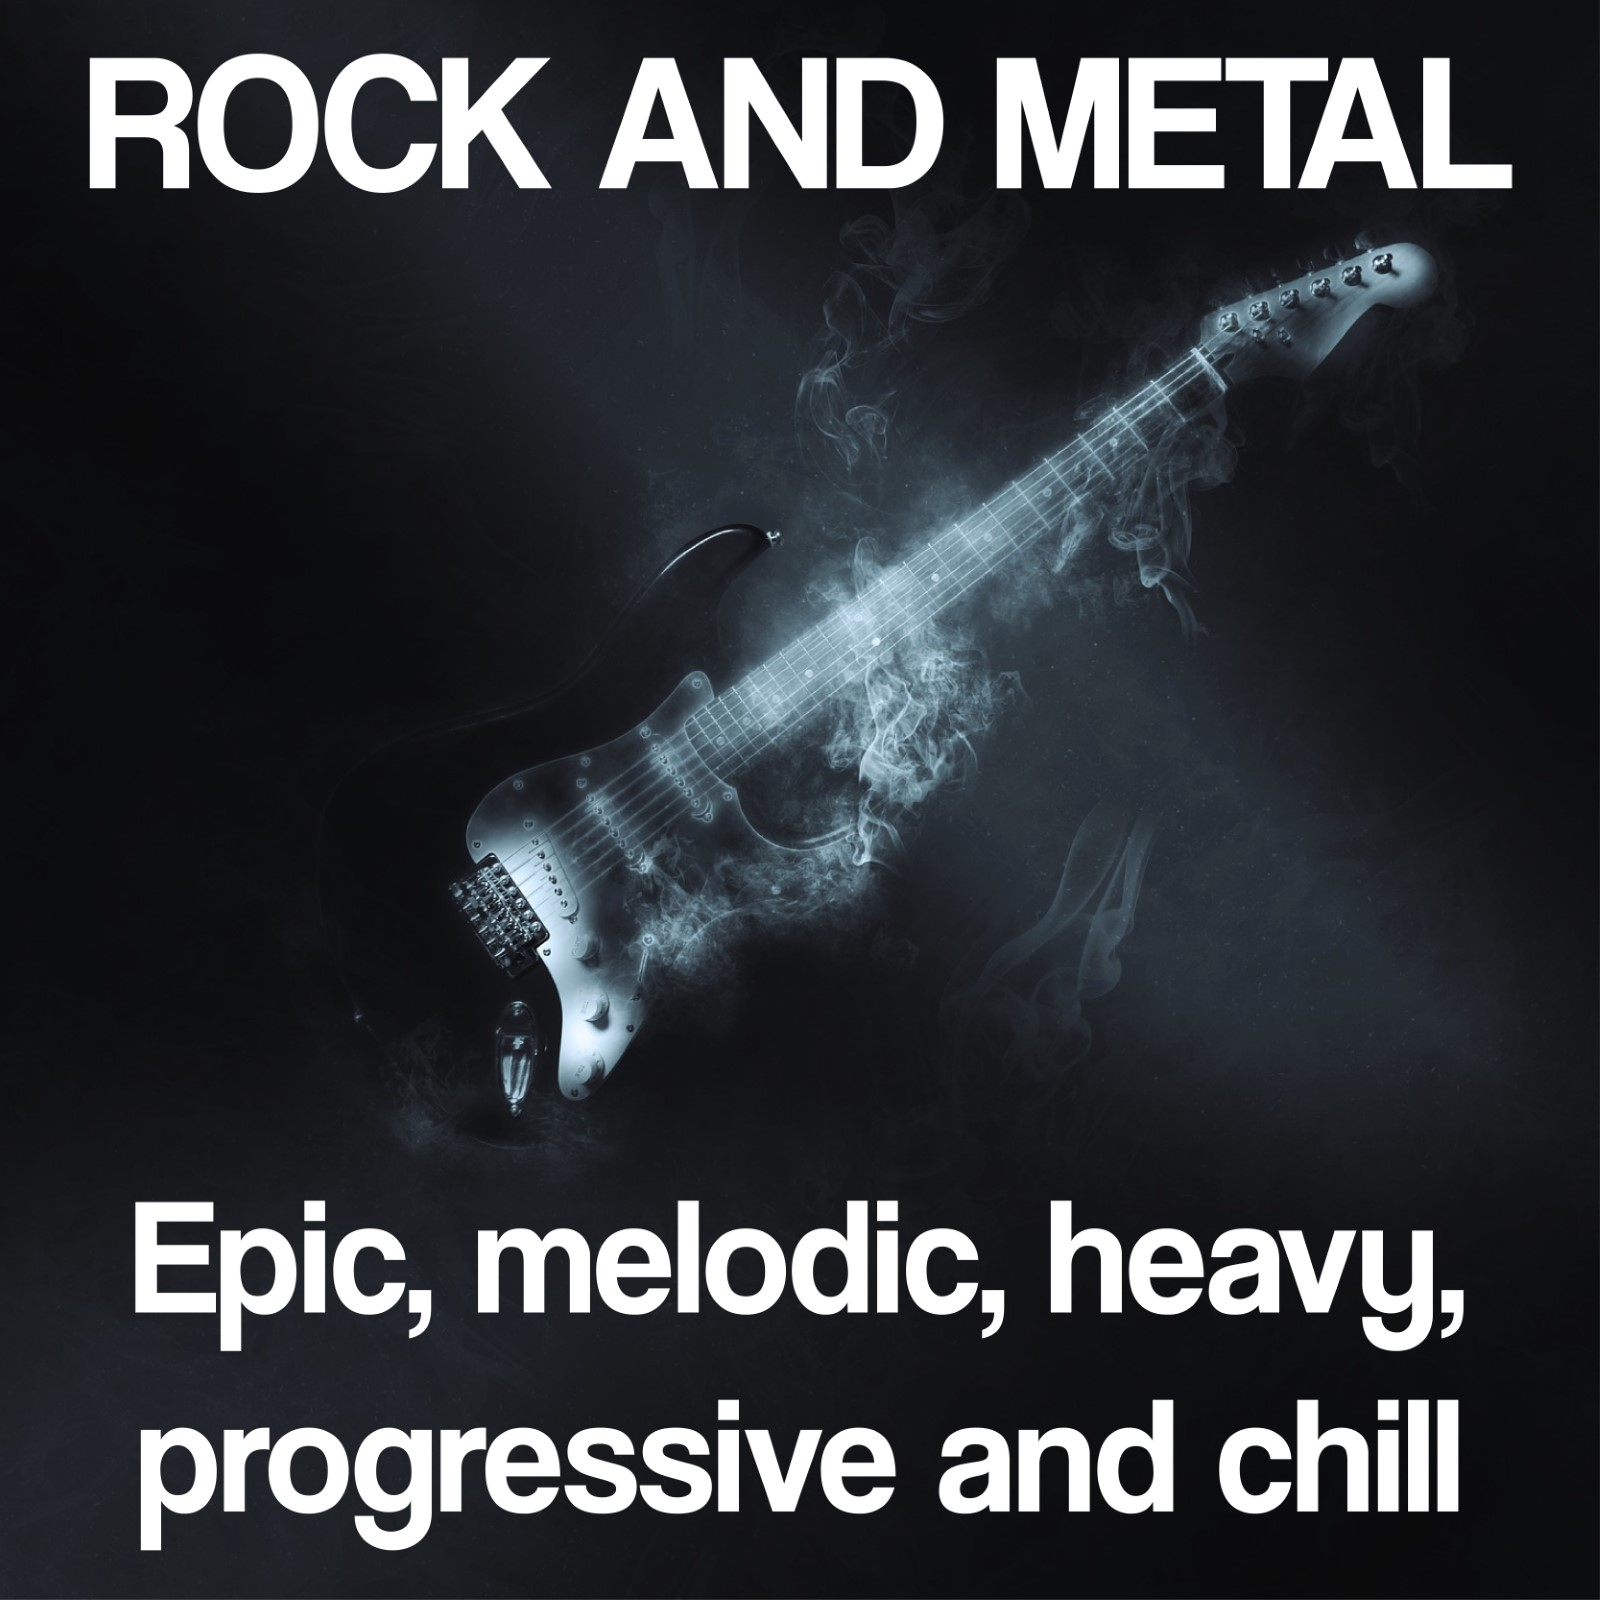 - A collection of high quality metal and rock pieces. Variations from grand epic melodic metal pieces to chill rock and technically advanced progressive.